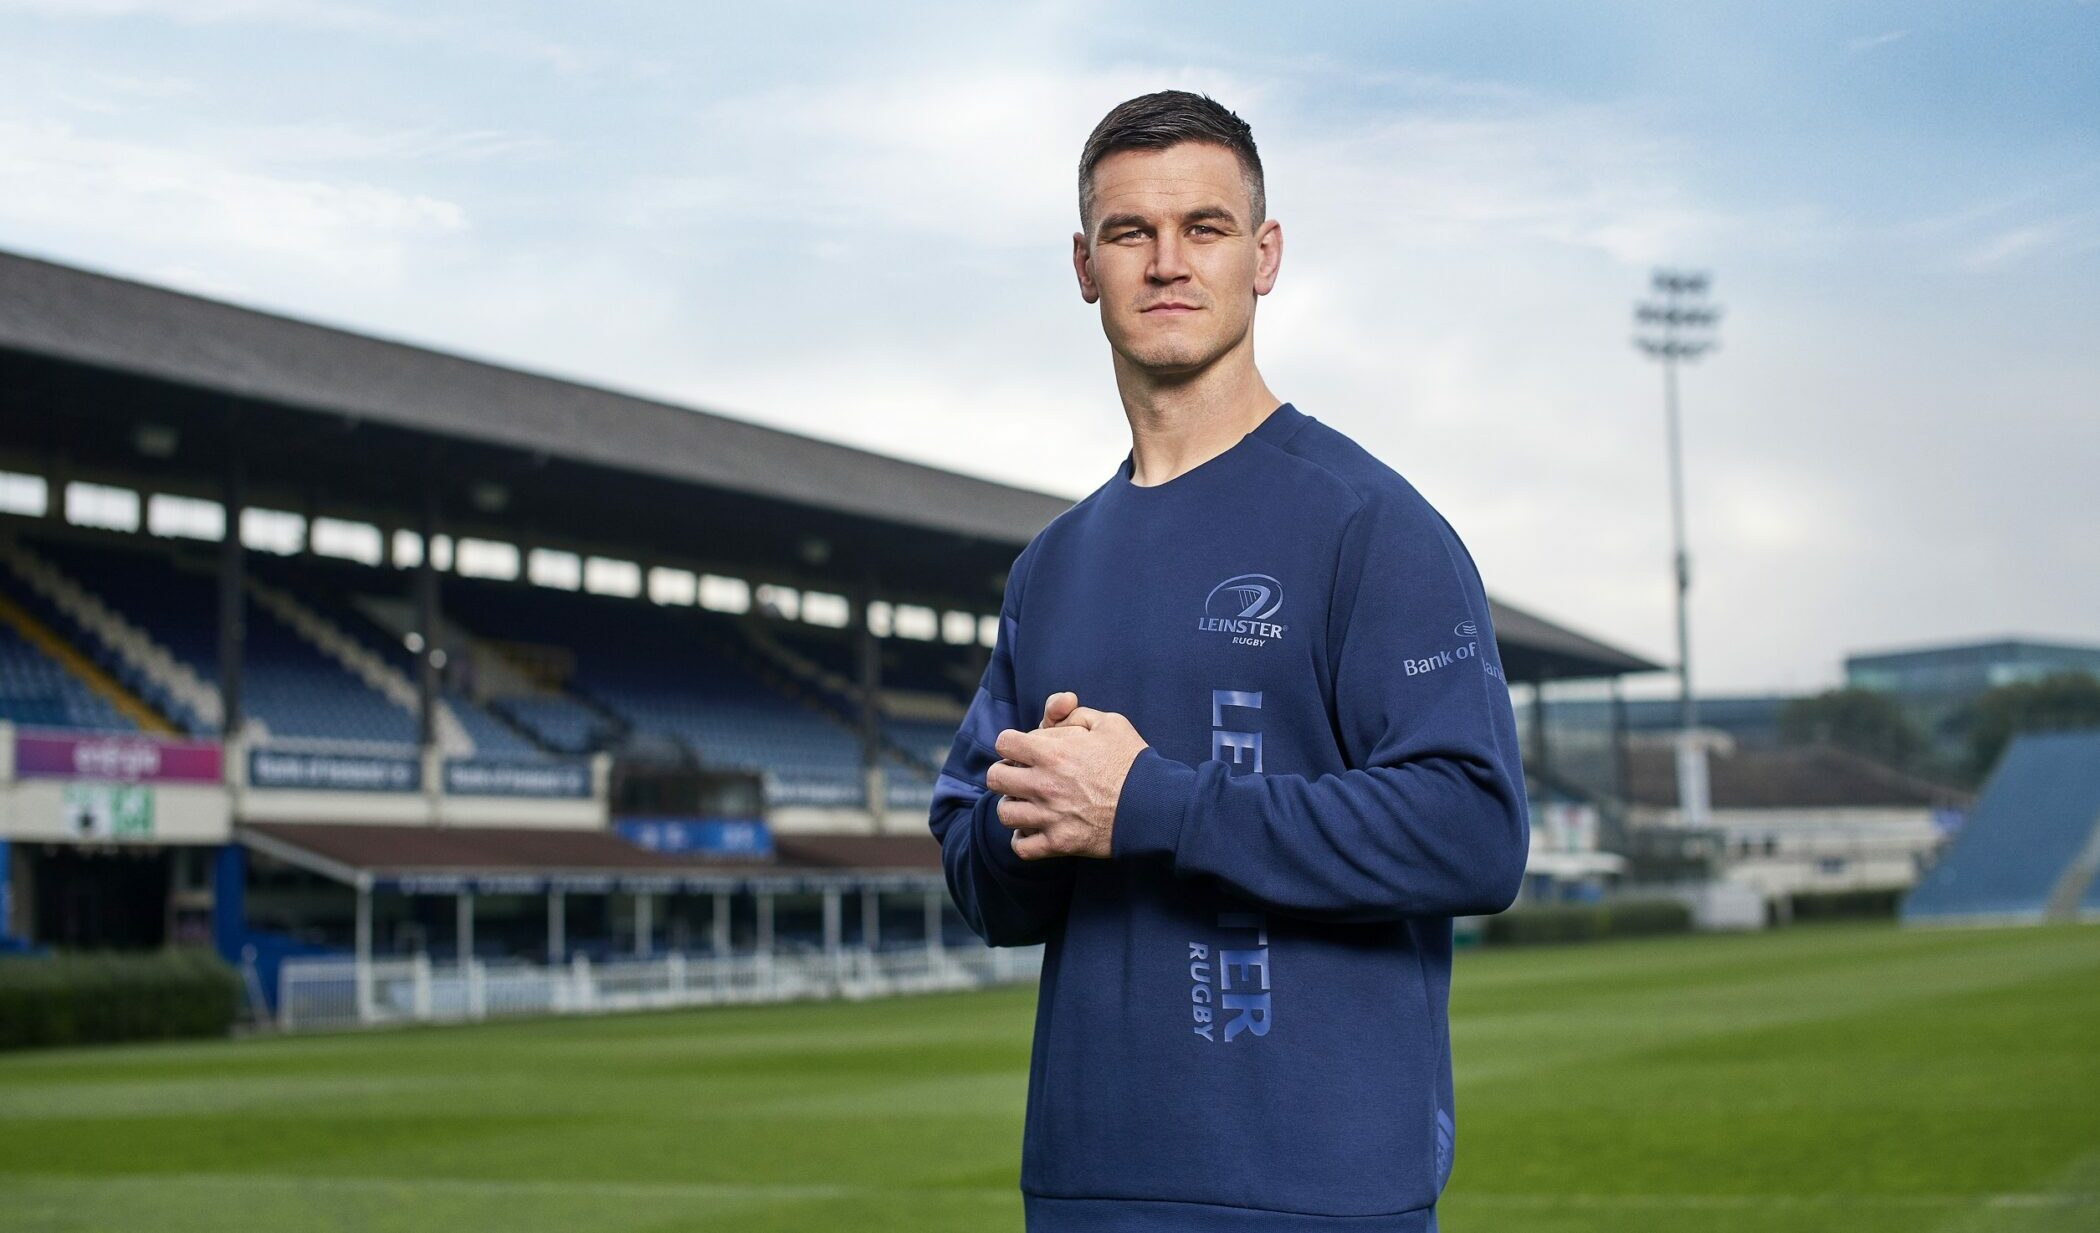 Demostrar mimar Laboratorio  Leinster Rugby | New adidas Leinster Rugby training range available now